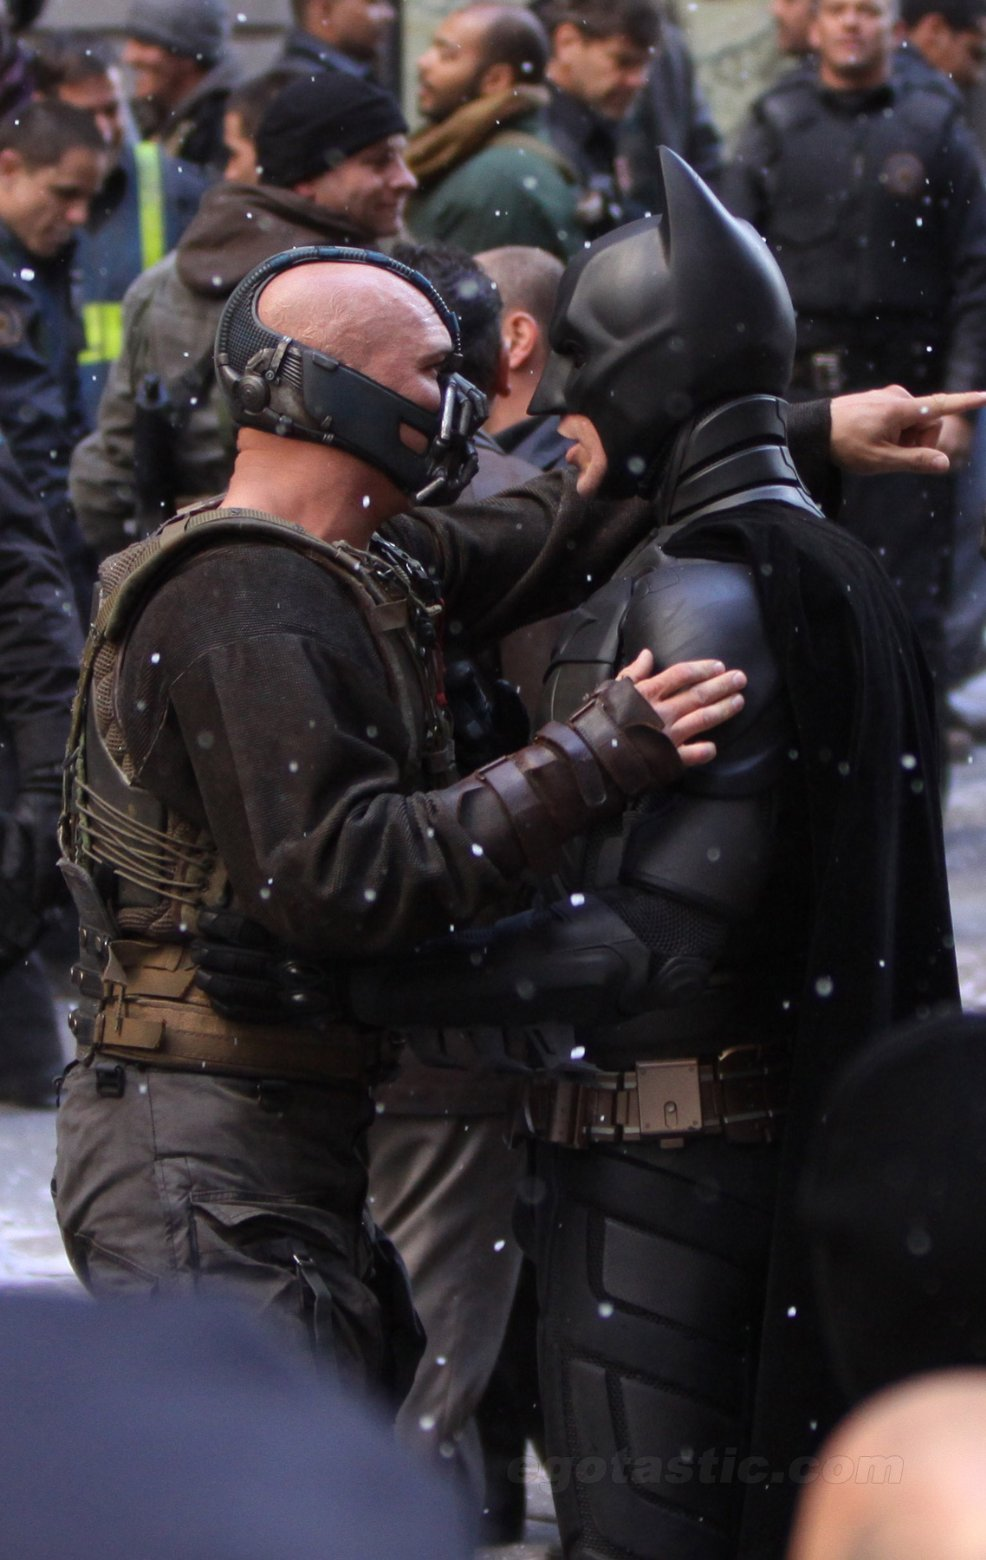 The Dark Knight Rises Bane VS BatmanThe Dark Knight Rises Batman Vs Bane